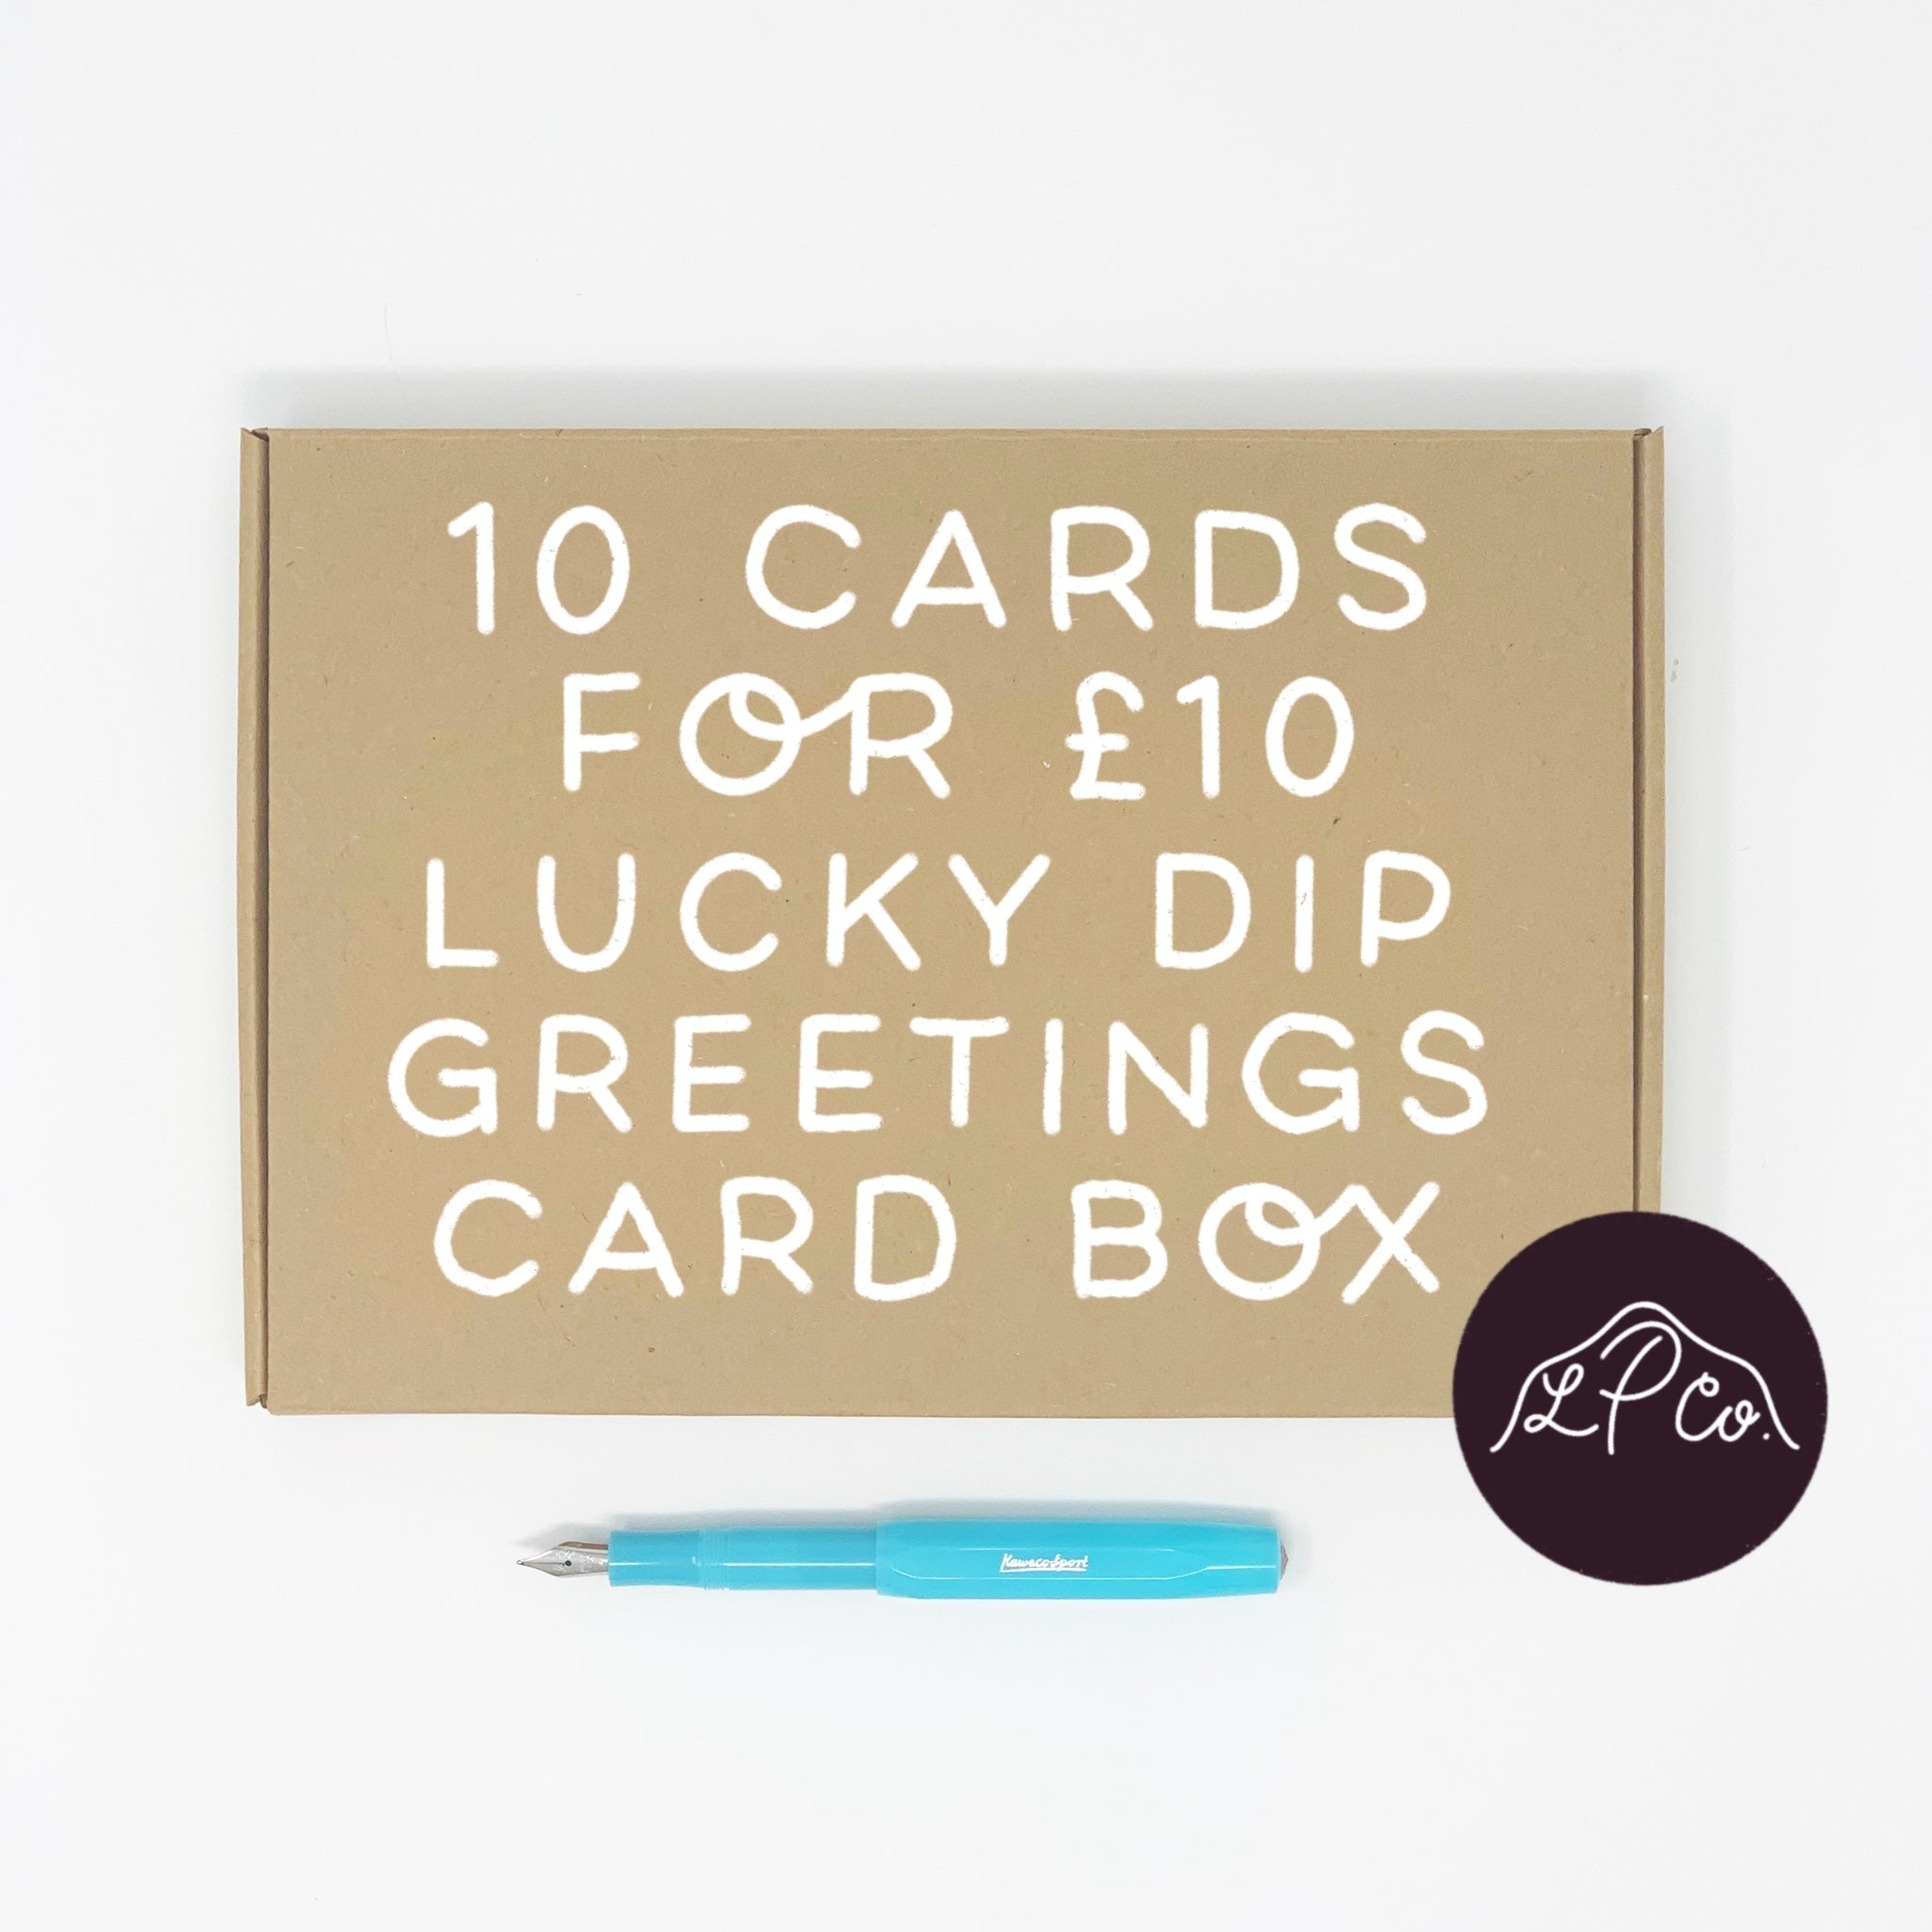 Lucky Dip Greetings Card Box